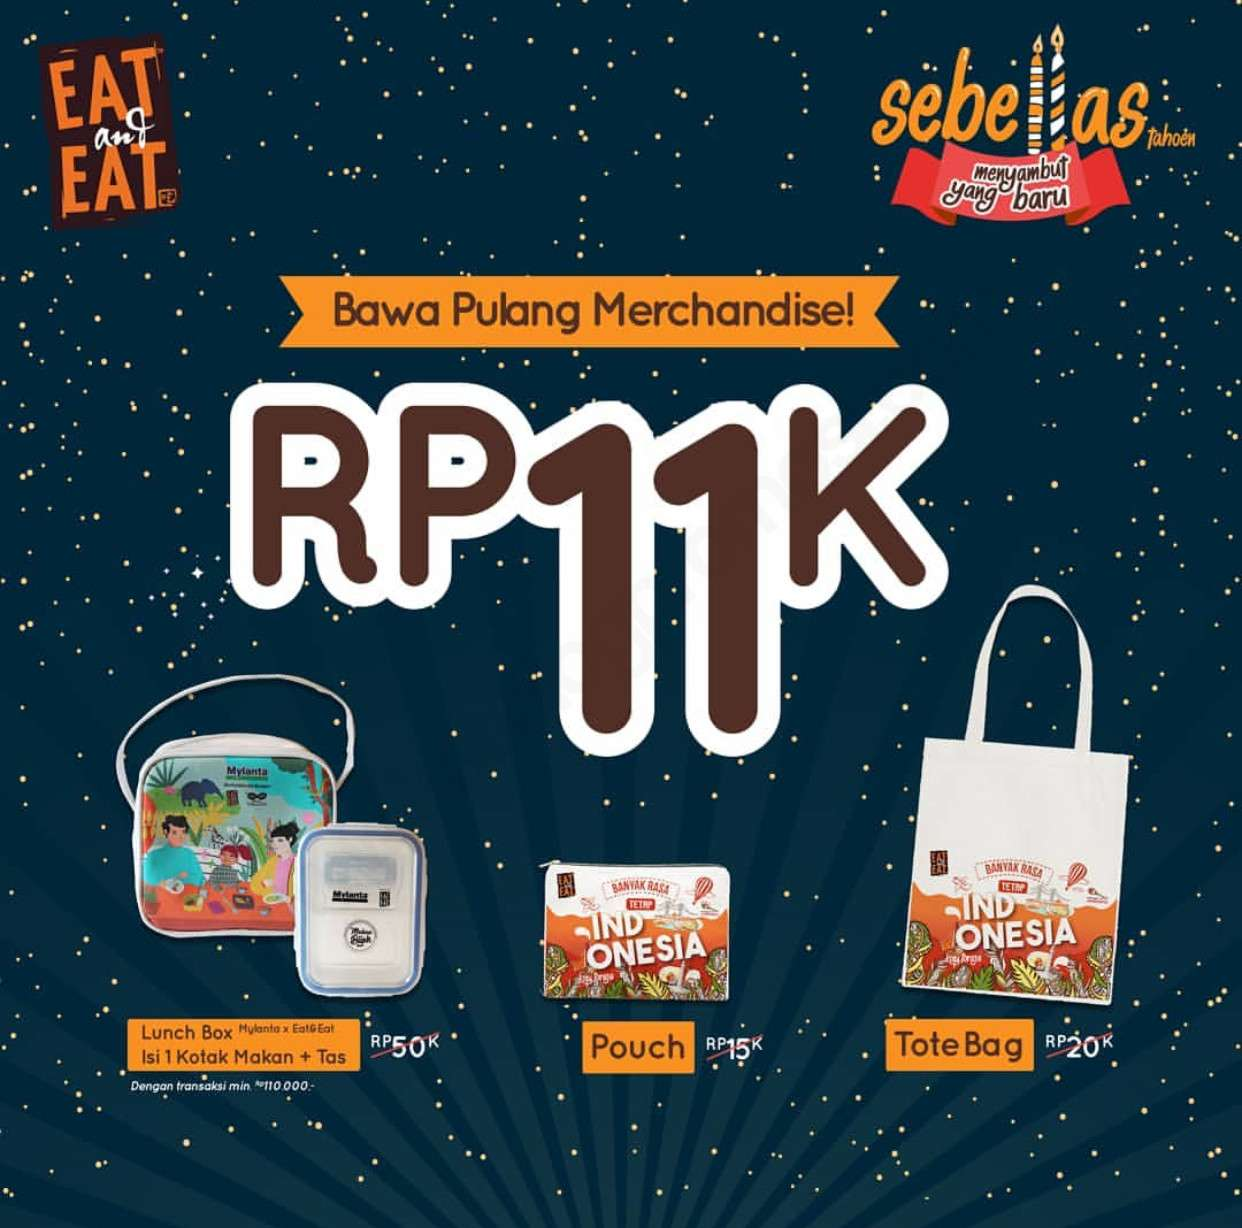 Eat and Eat Promo Merchandise cuma Rp. 11.000